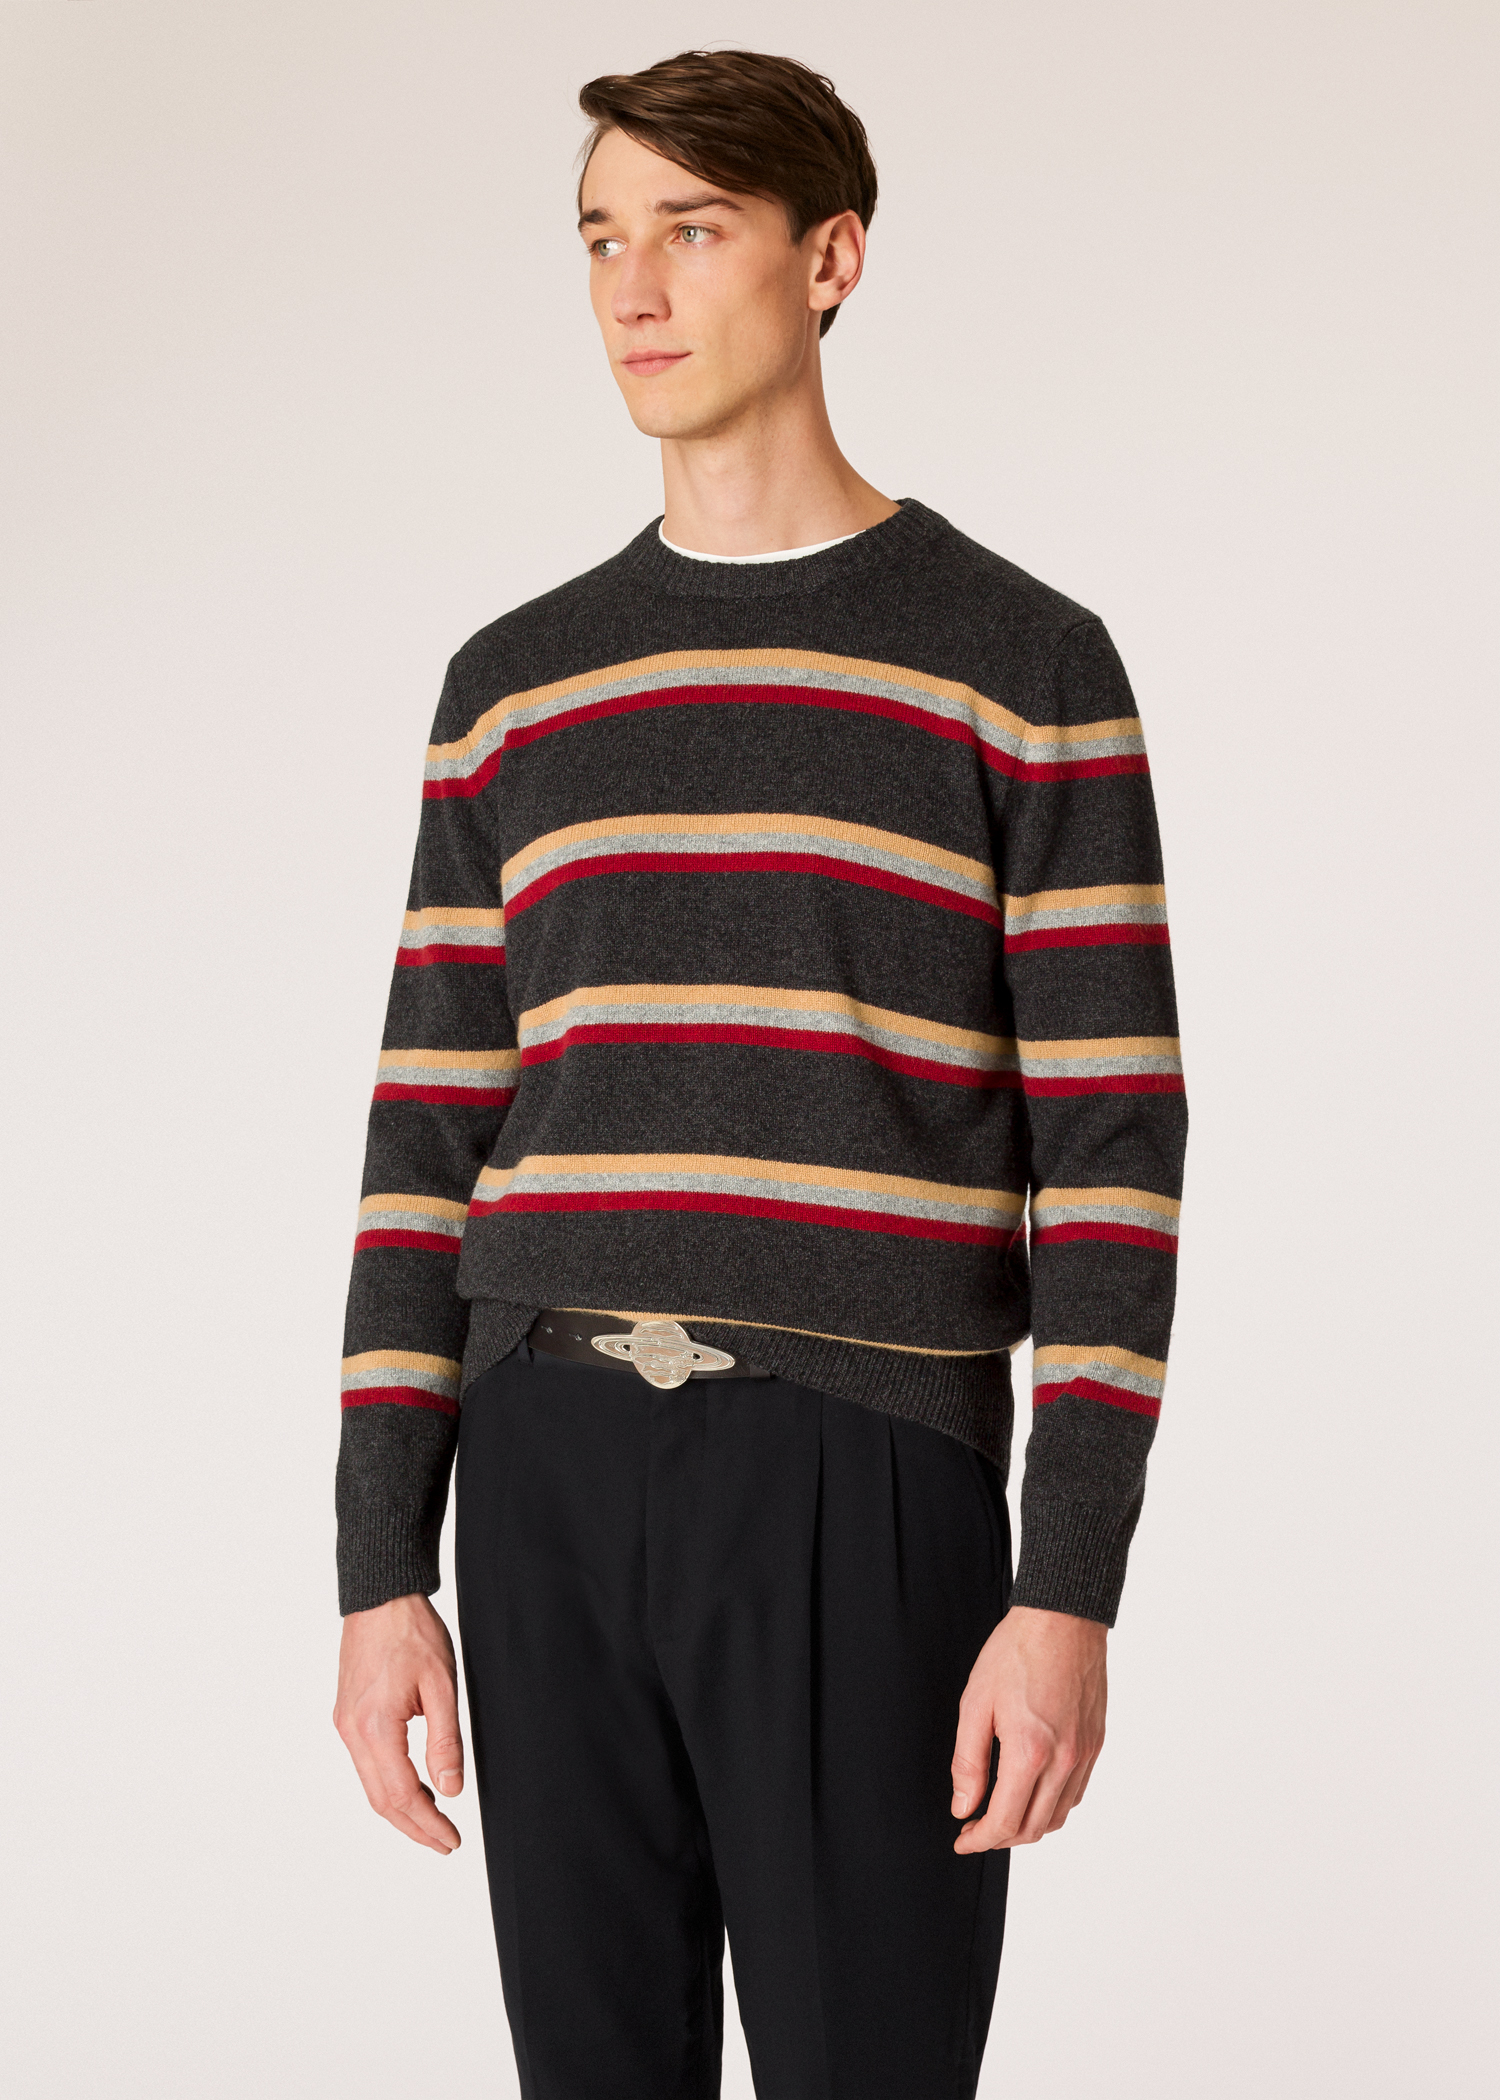 dd06ceee43 Model front close up - Men s Charcoal Grey Stripe Lambswool Sweater Paul  Smith